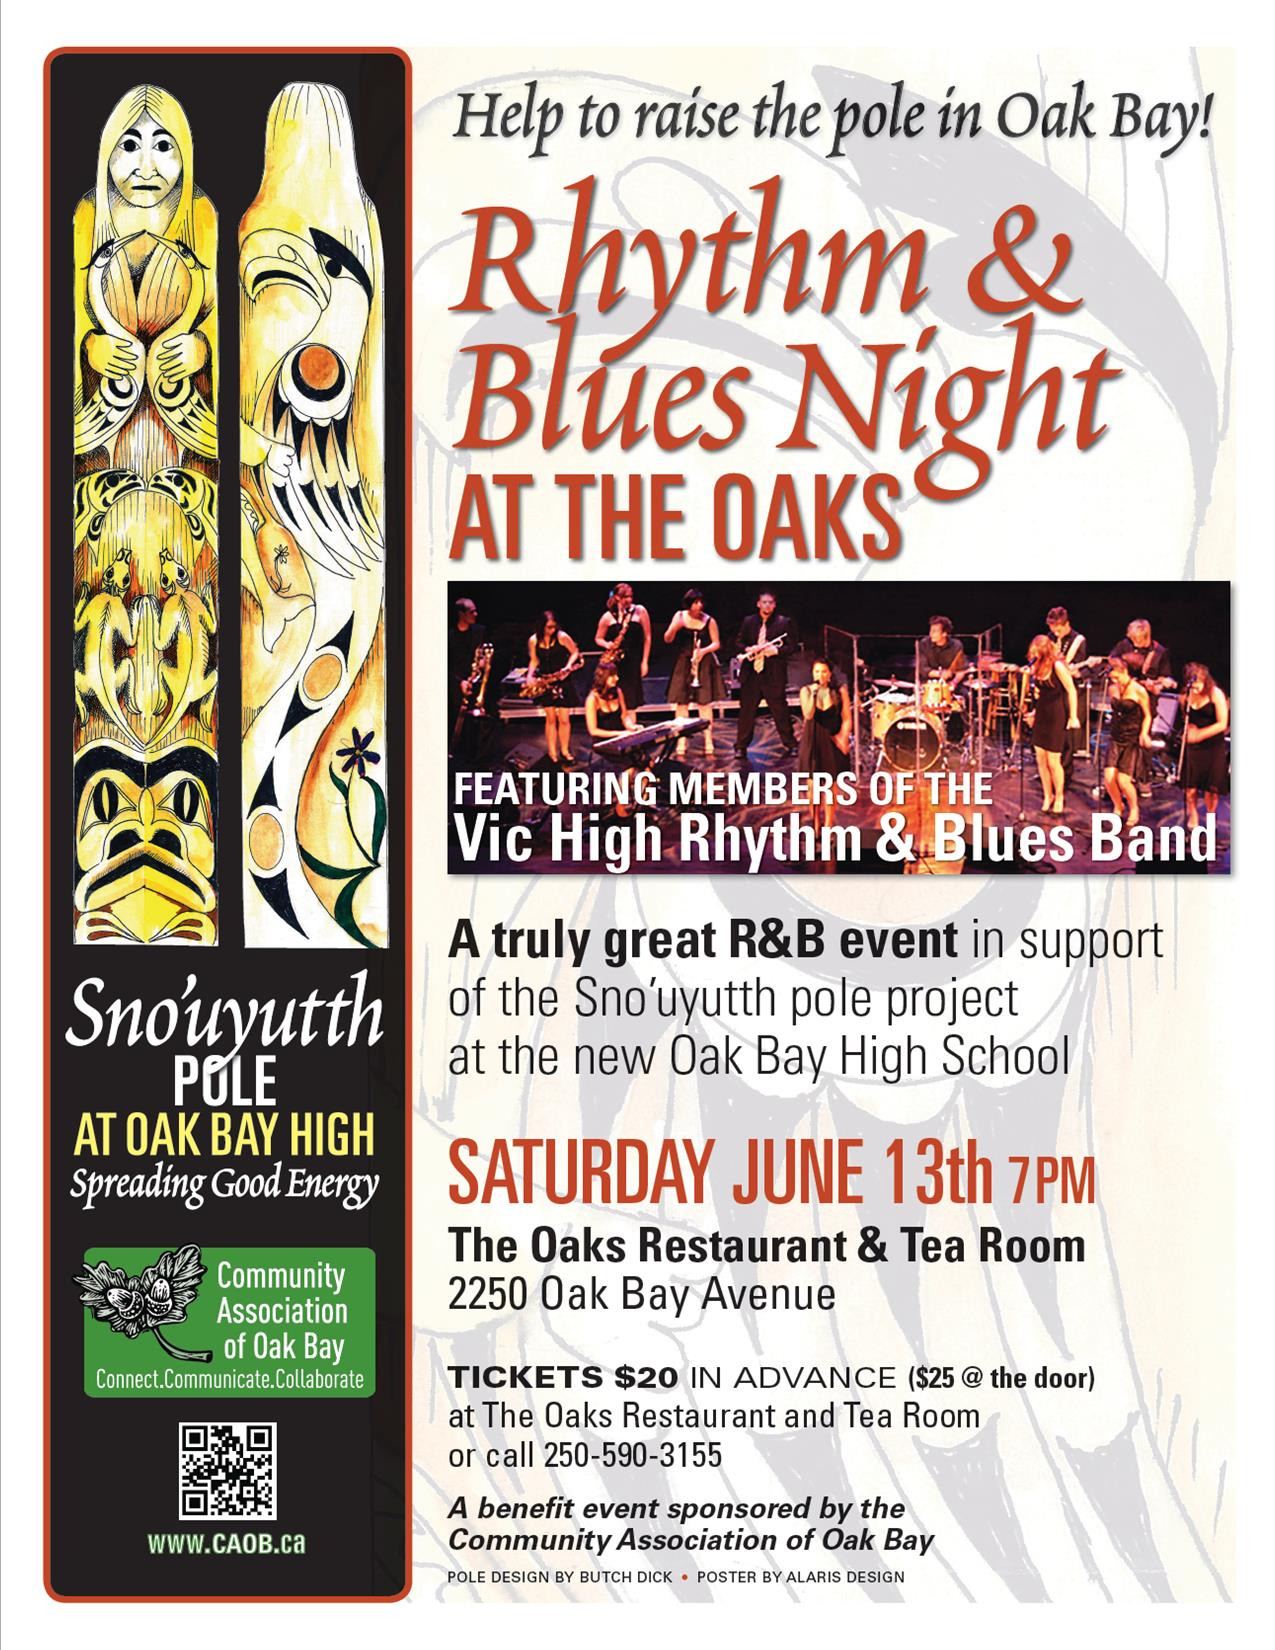 Rhythm & Blues Night at the Oak